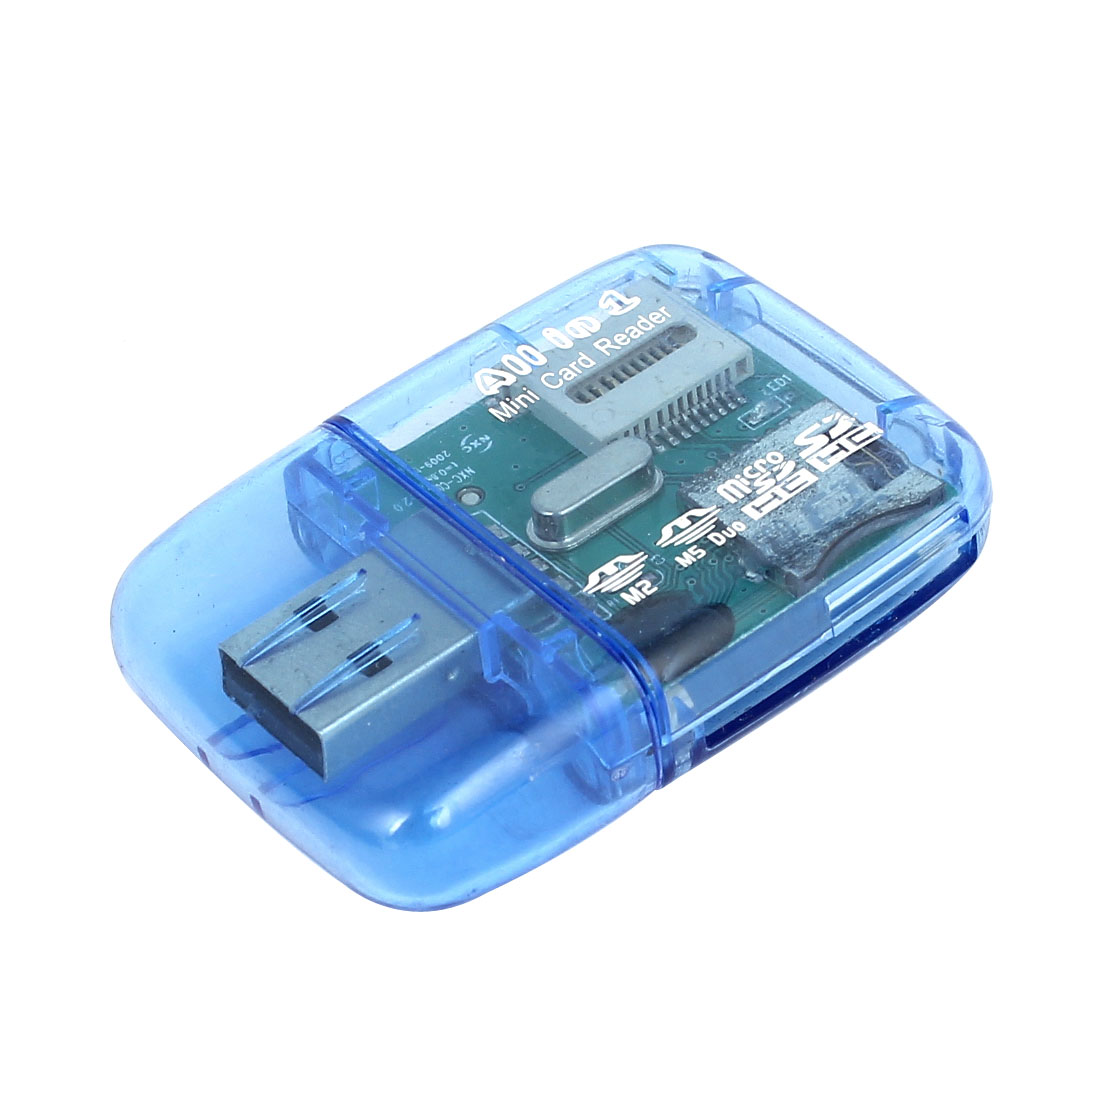 Blue Plastic Shell USB 2.0 4 in 1 SD SDHC Micro SD Memory Card Reader